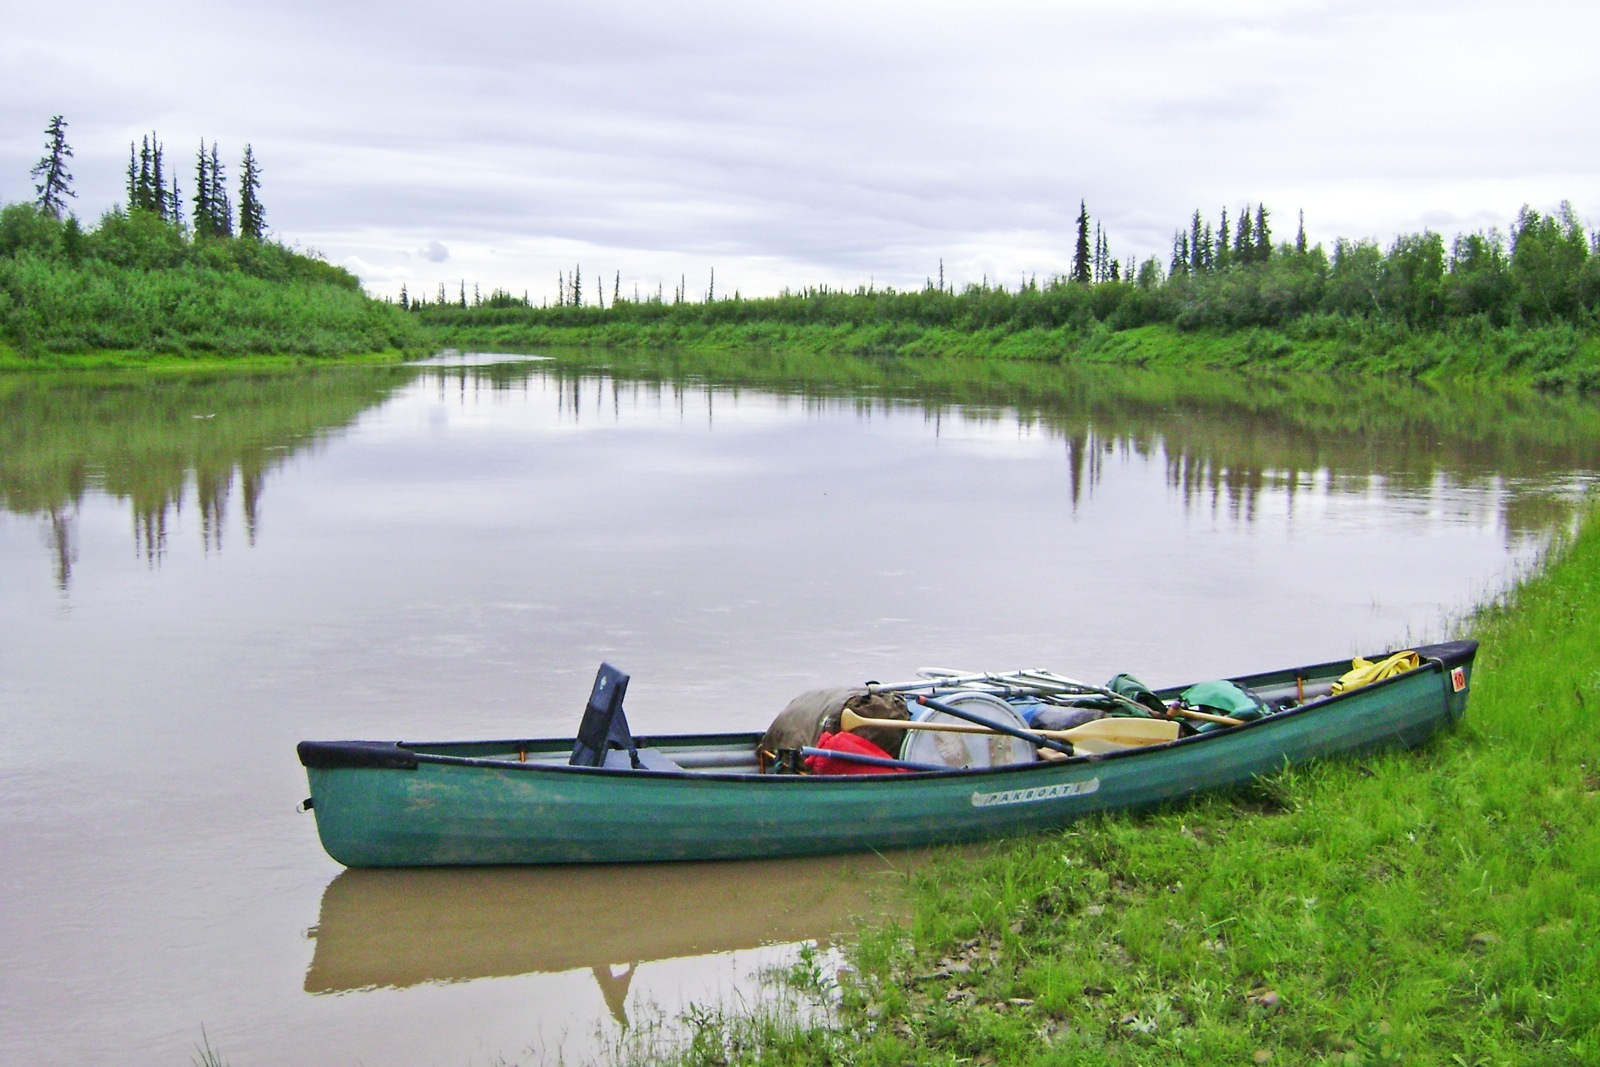 A single tandem canoe loaded up with gear sits on a grassy shore of the calm river.